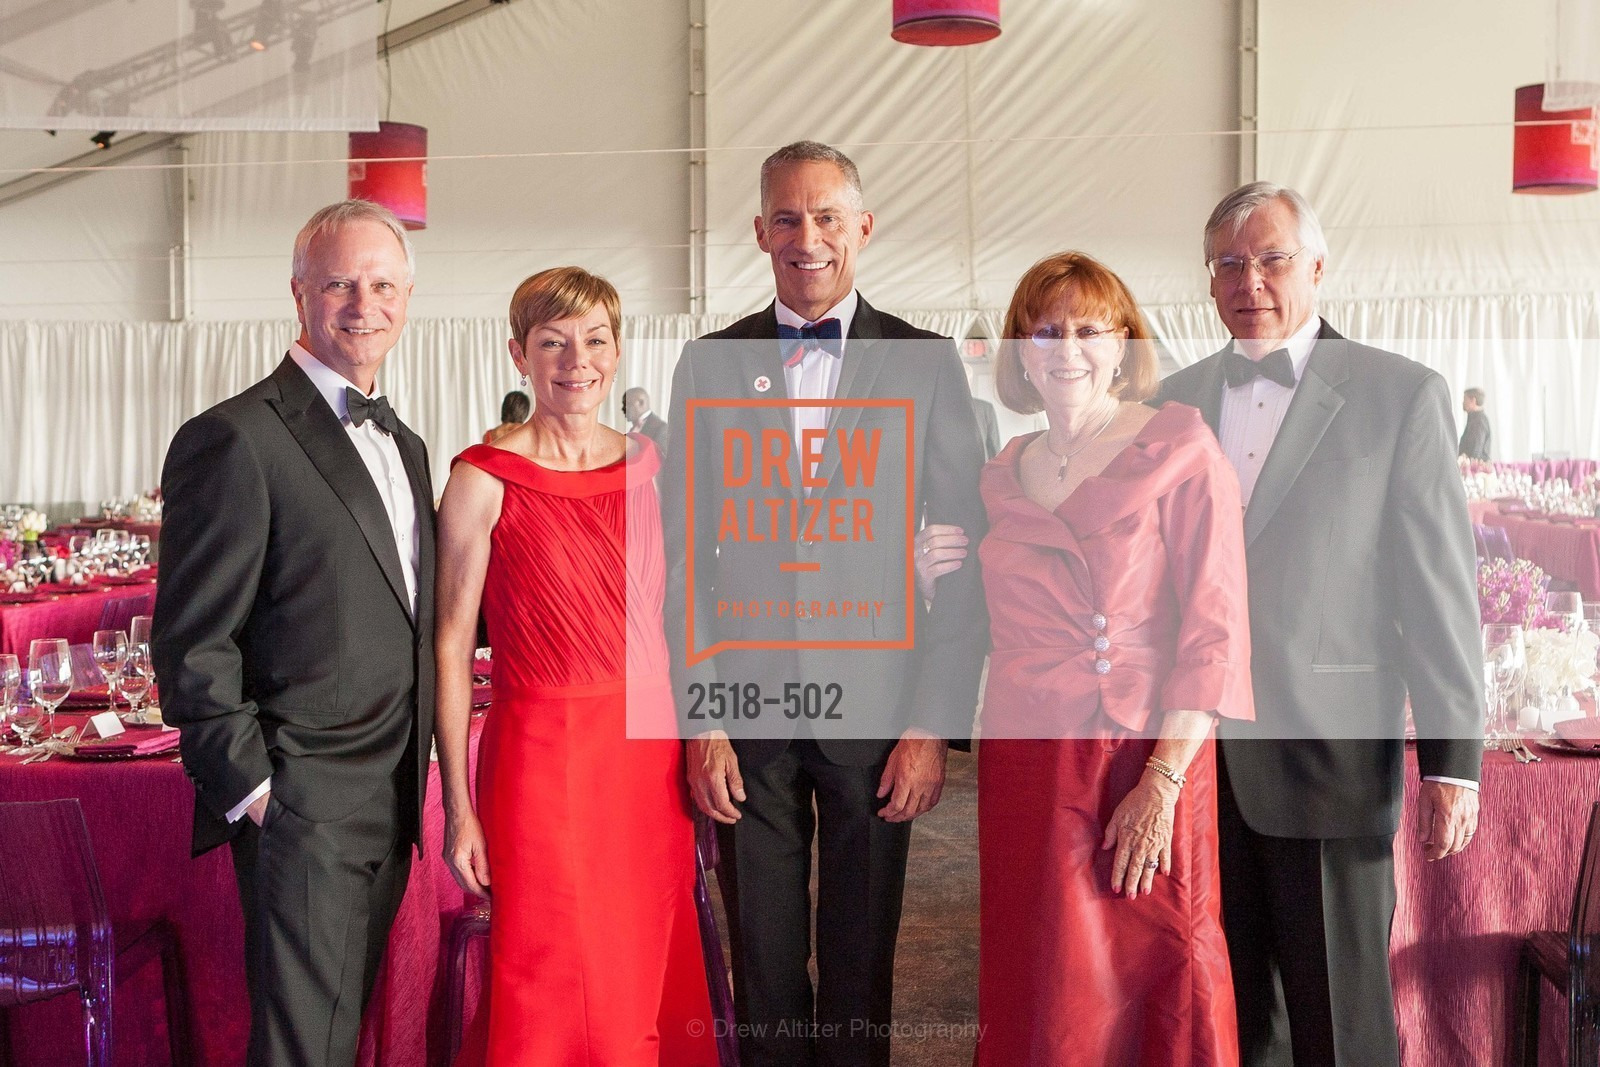 Michael Downey, Paula Downey, Mark Cloutier, Mary Cranston, Roger van Craeynest, 2014 RED CROSS Gala Honoring Paula Downey as the American Red Cross Bay Area Chapter Humanitarian CEO of the Year, US. Treasure Island (The Great Lawn), April 5th, 2014,Drew Altizer, Drew Altizer Photography, full-service agency, private events, San Francisco photographer, photographer california